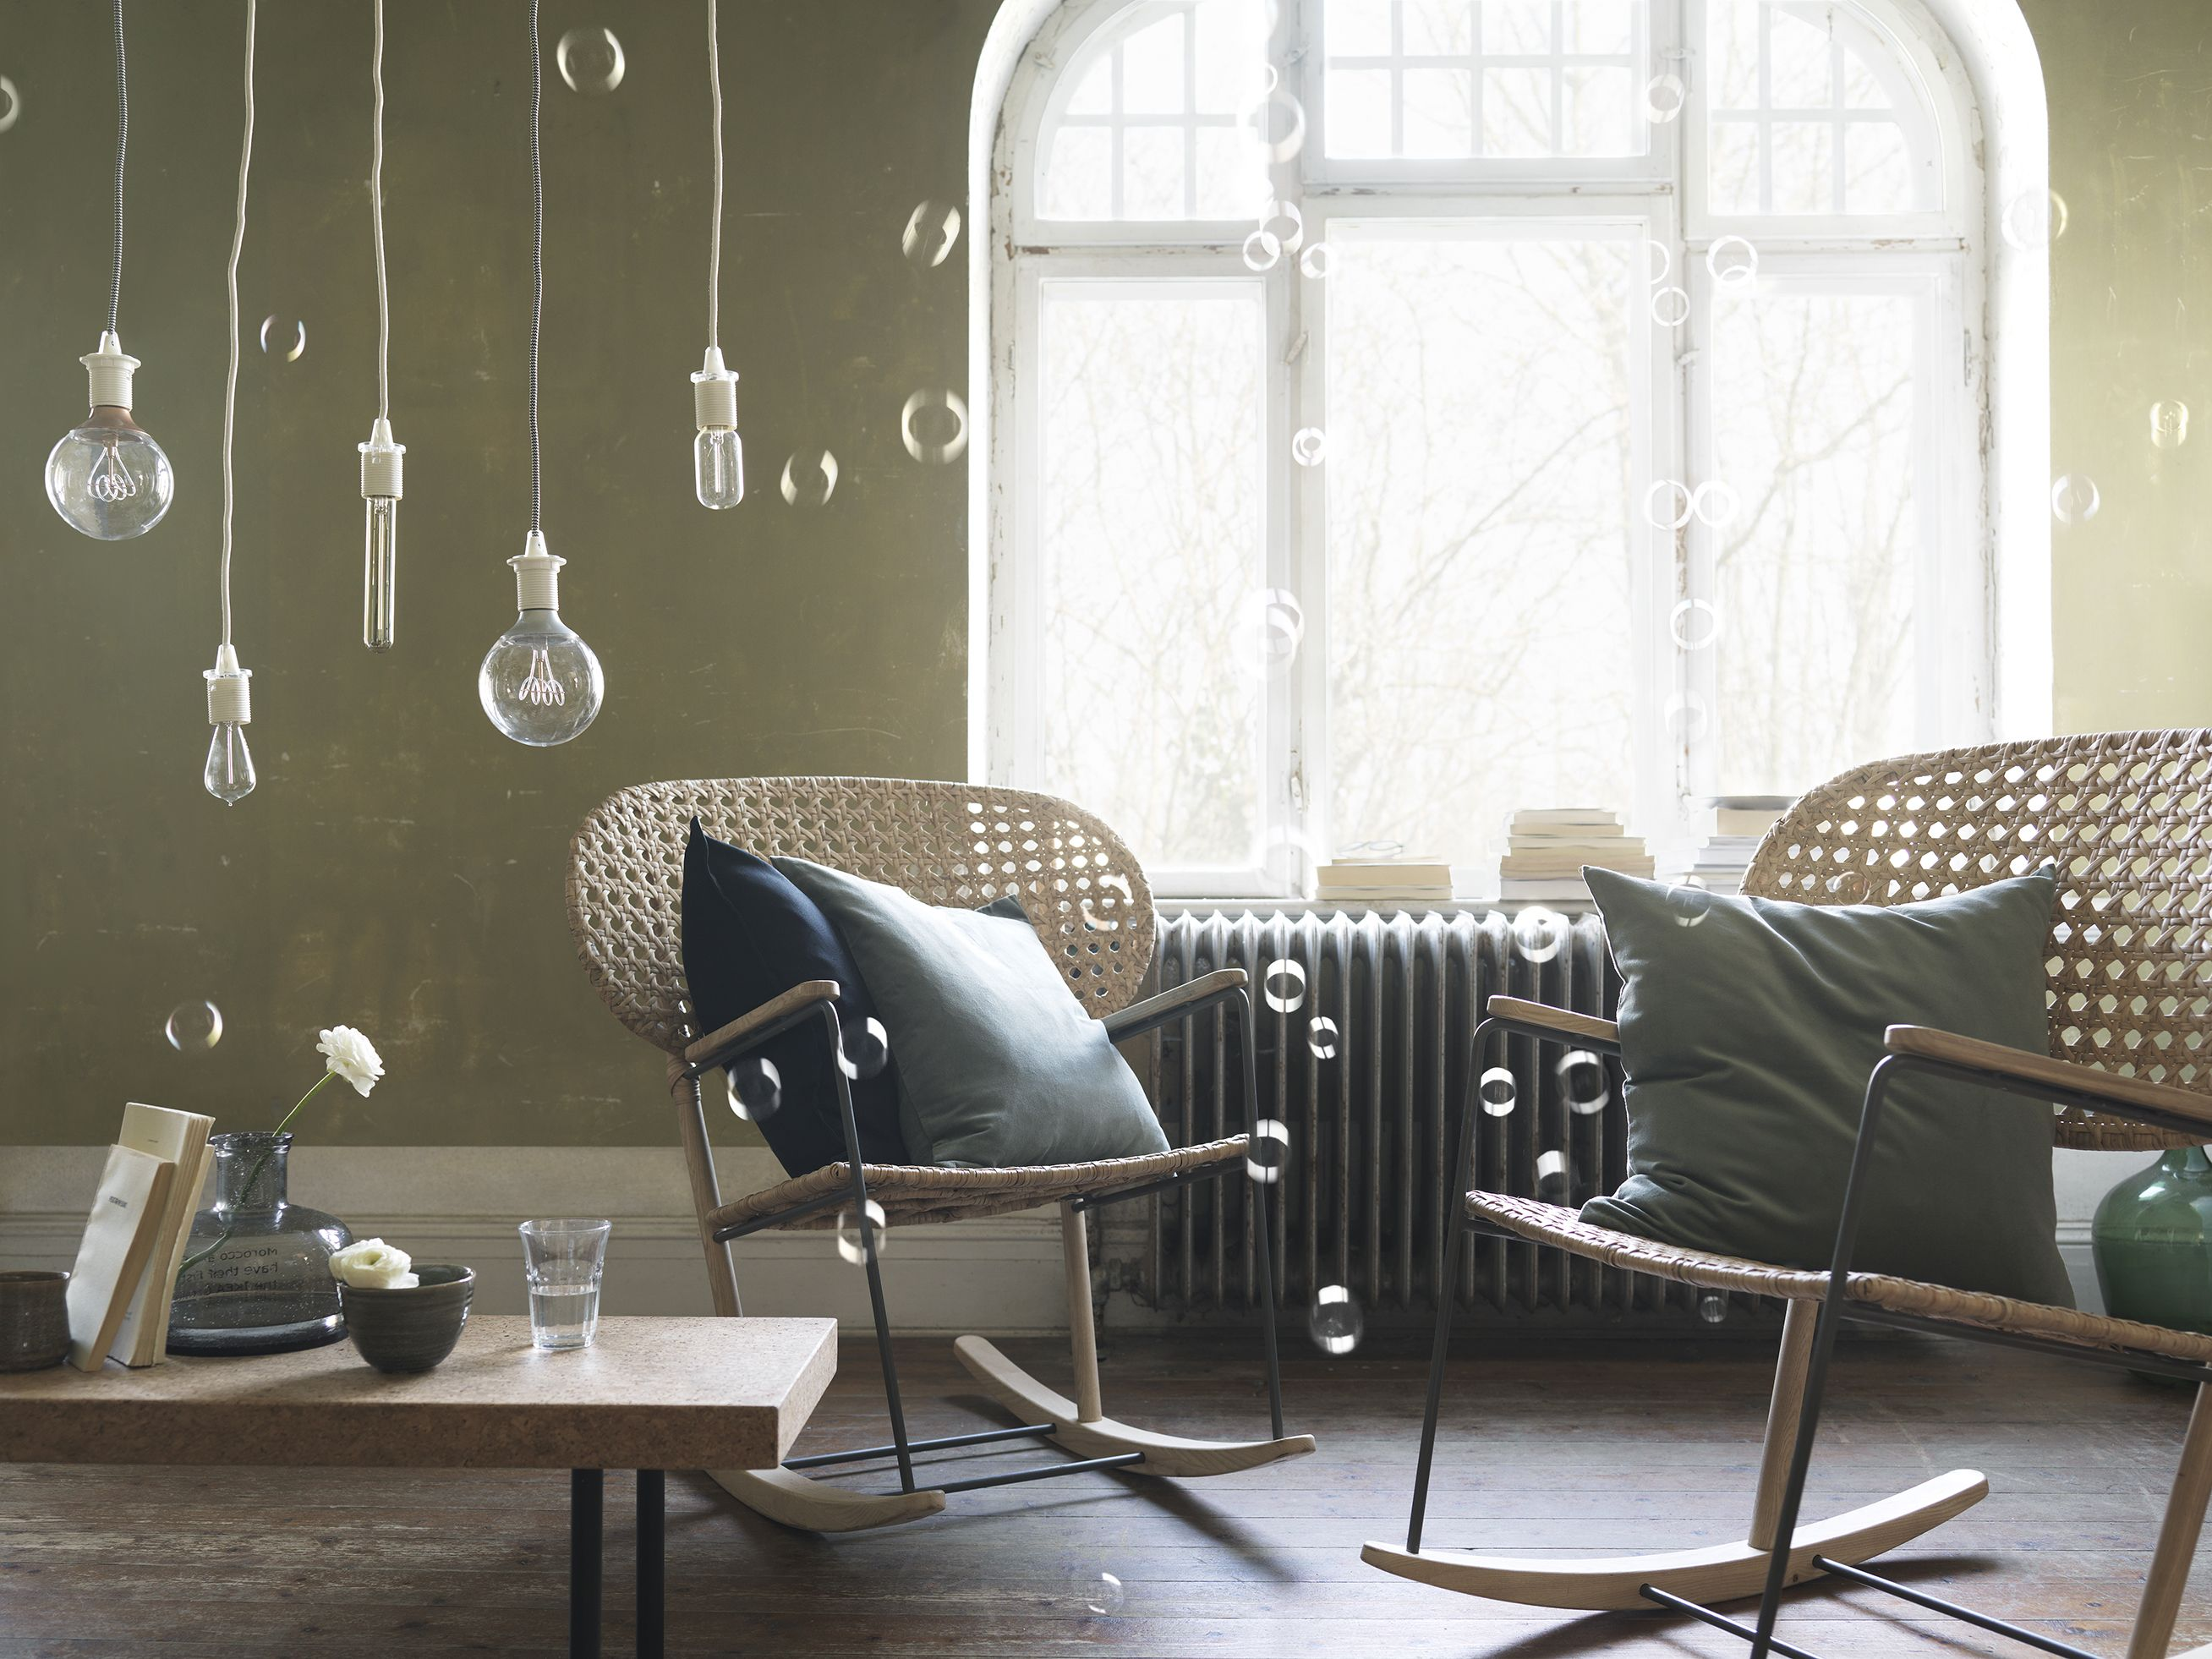 Swell 7 Gronadal Rocking Chair House Someday Beautiful Ikea Gmtry Best Dining Table And Chair Ideas Images Gmtryco